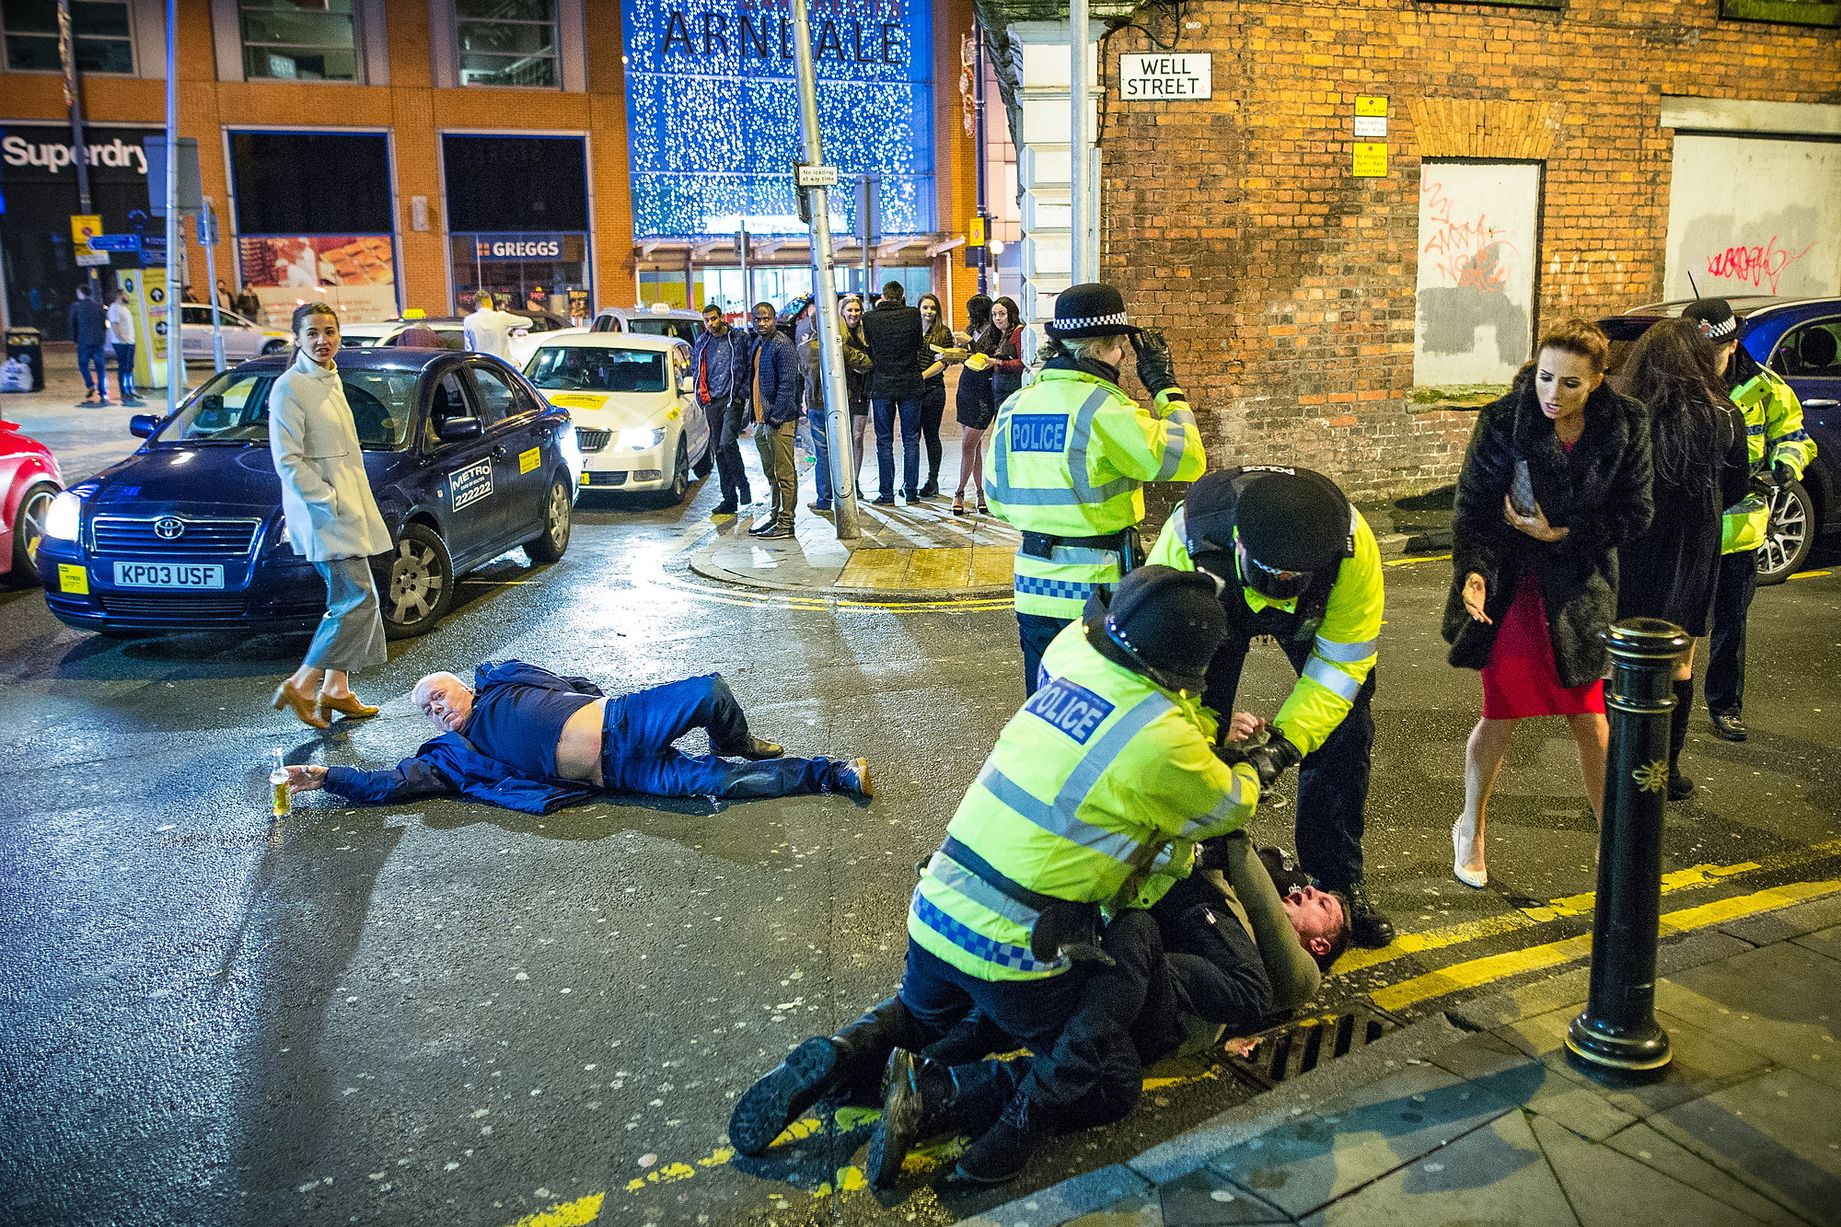 Manchester New Year's Eve Photo | Know Your Meme